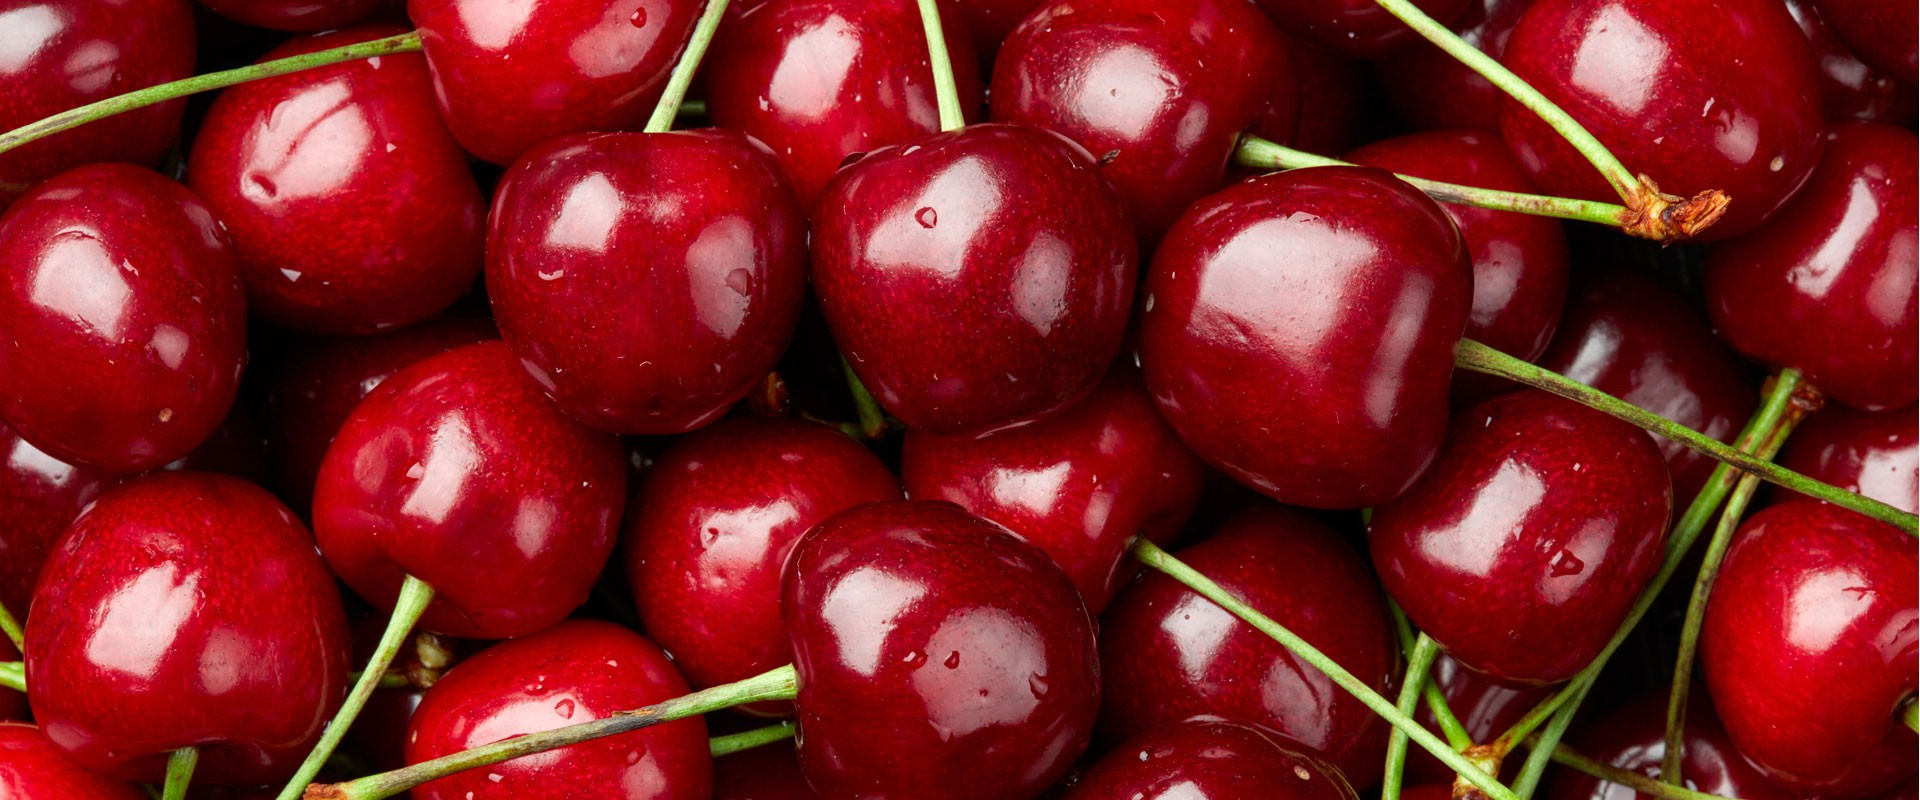 Cherries-Product